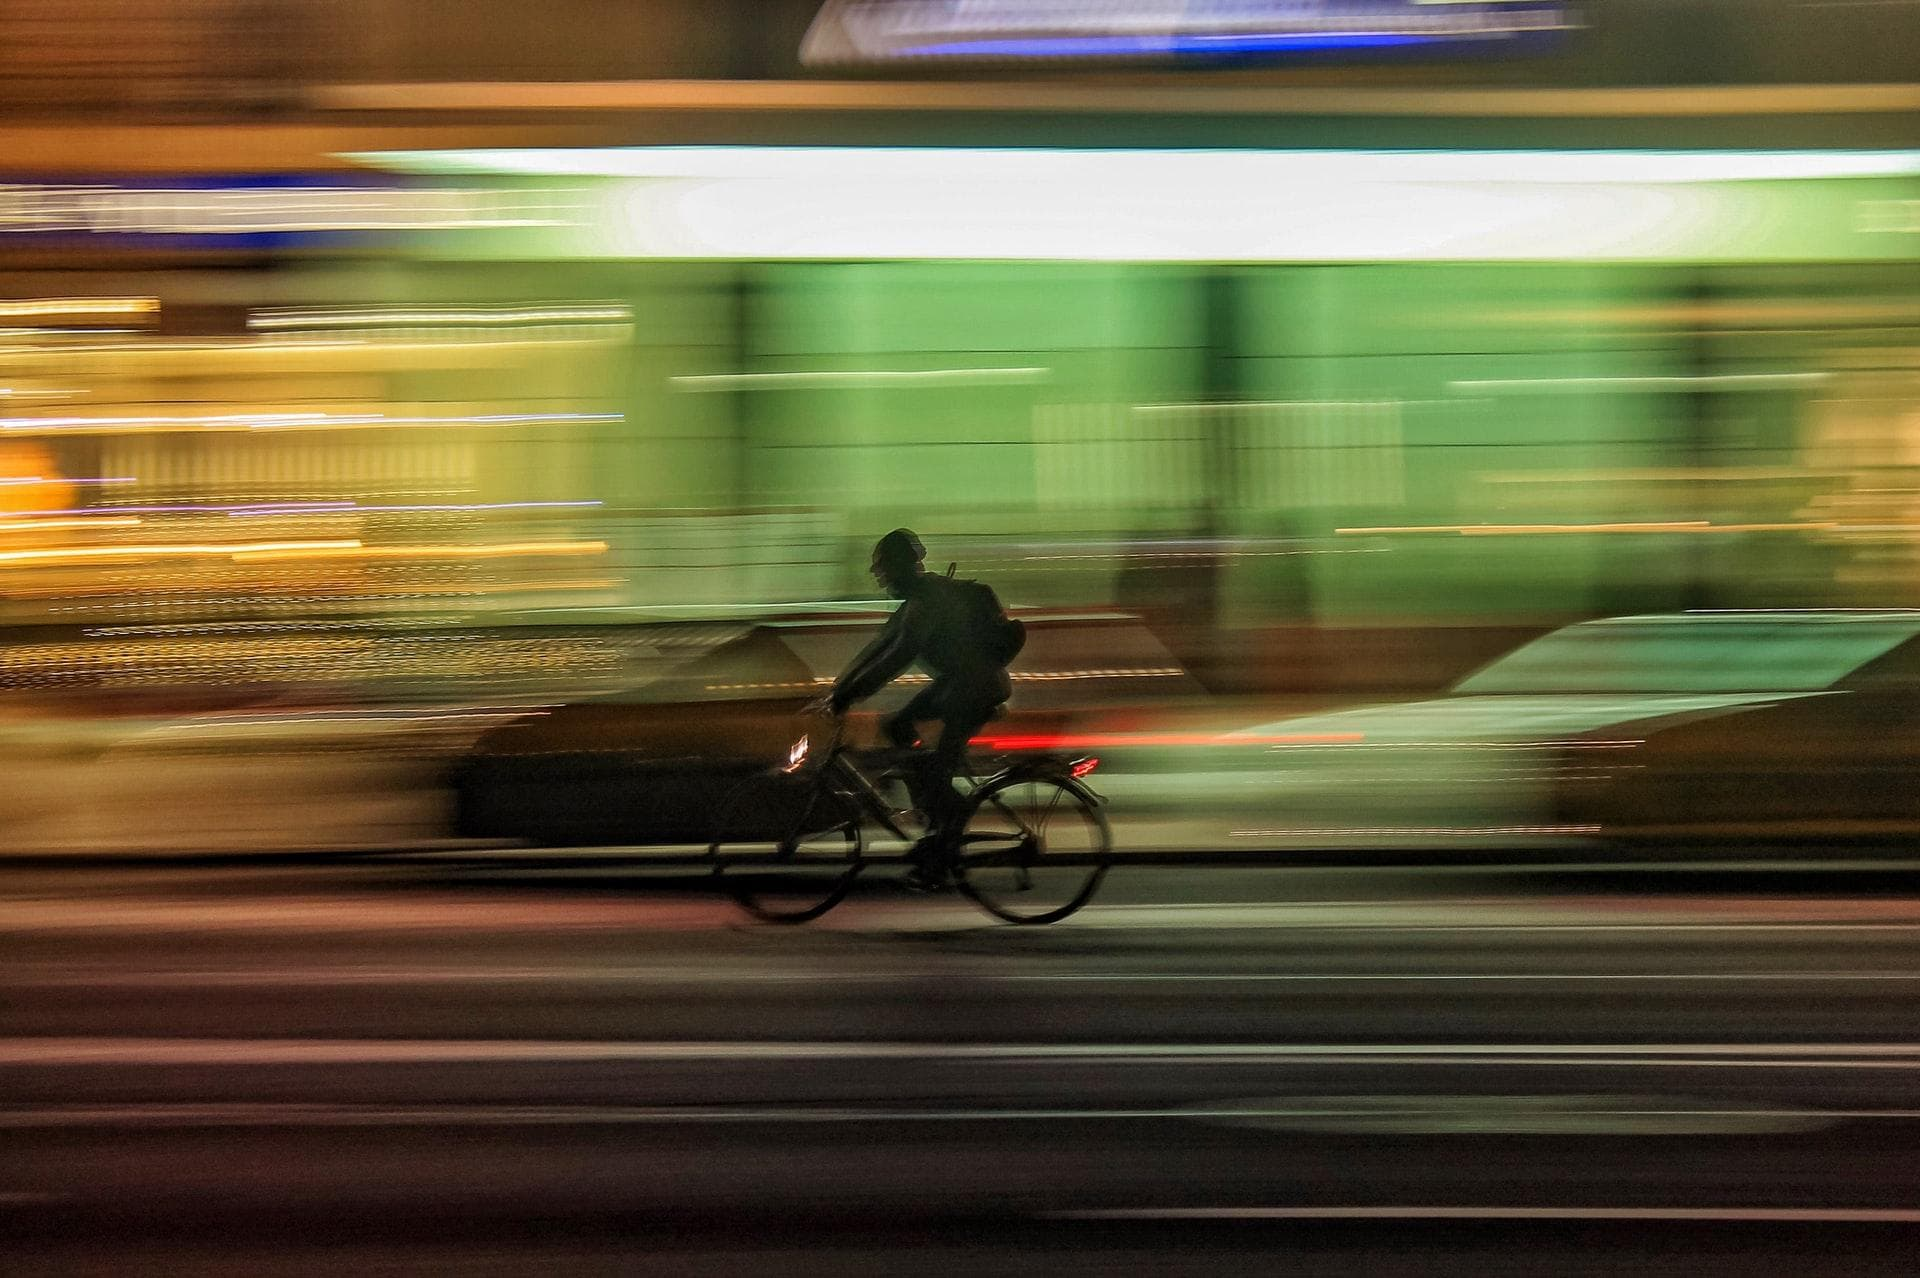 fast biker. background is city lights at night, blurred due to the high speed of biker